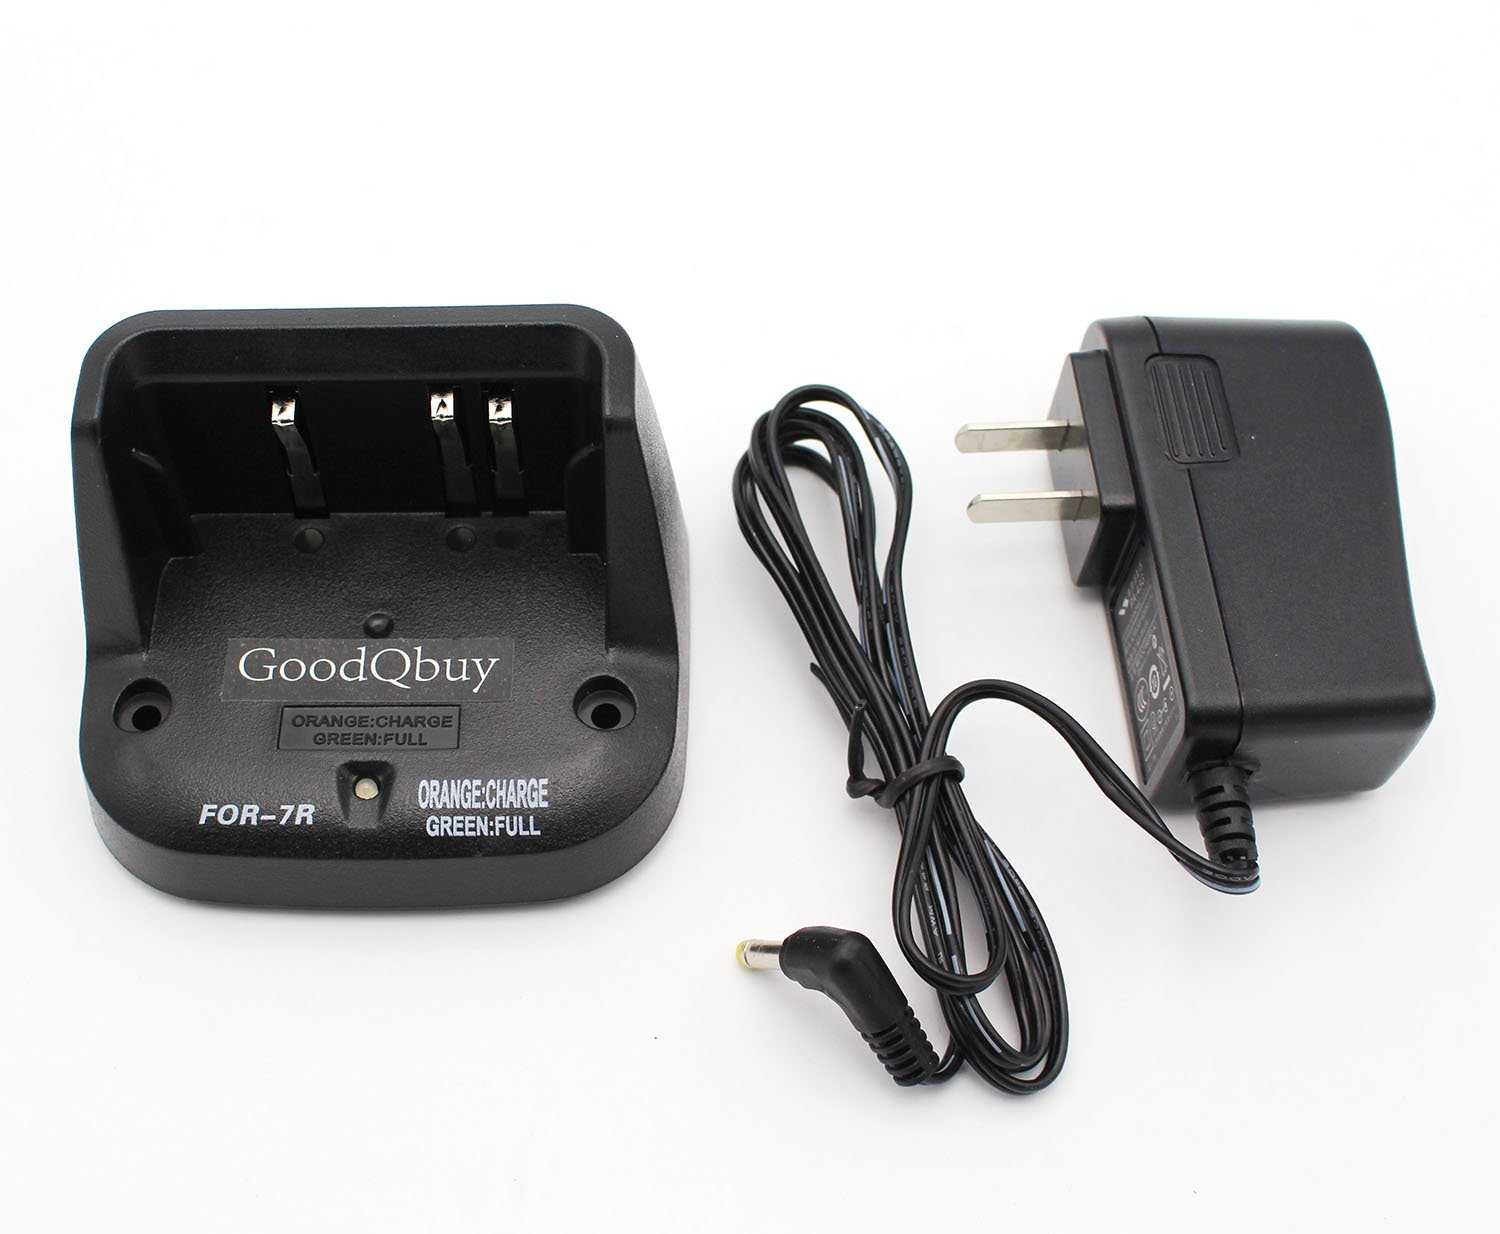 GoodQbuy Ni-MH Ni-CD FNB-58 FNB-58Li FNB-80 FNB-80Li Battery Charger For Yaesu Vertex VX-5 VX-5R VX-5RS VX-6 VX-6R/E VX-7R VX-7RB